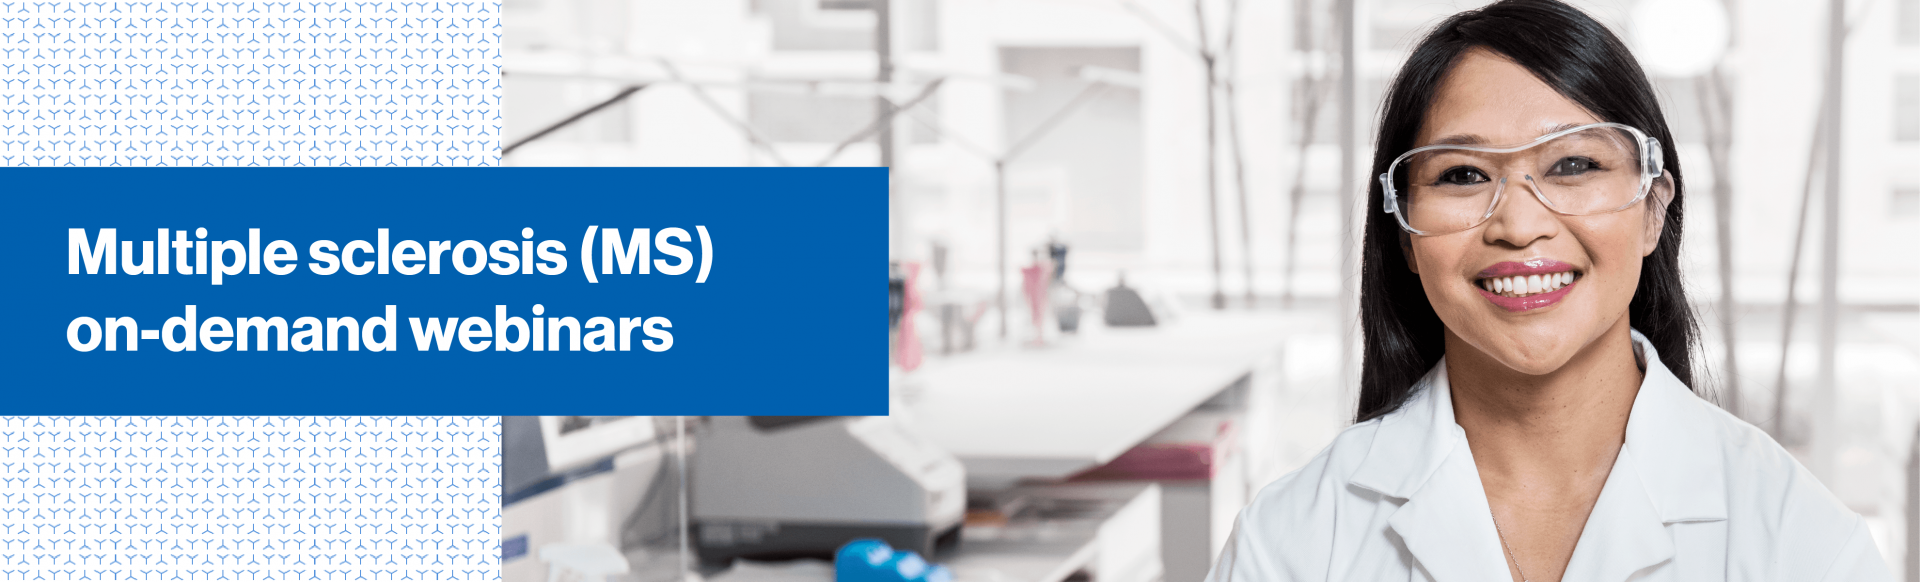 Top banner. Image of person in labcoat with safety goggles. Multiple Sclerosis (MS) on-demand webinars